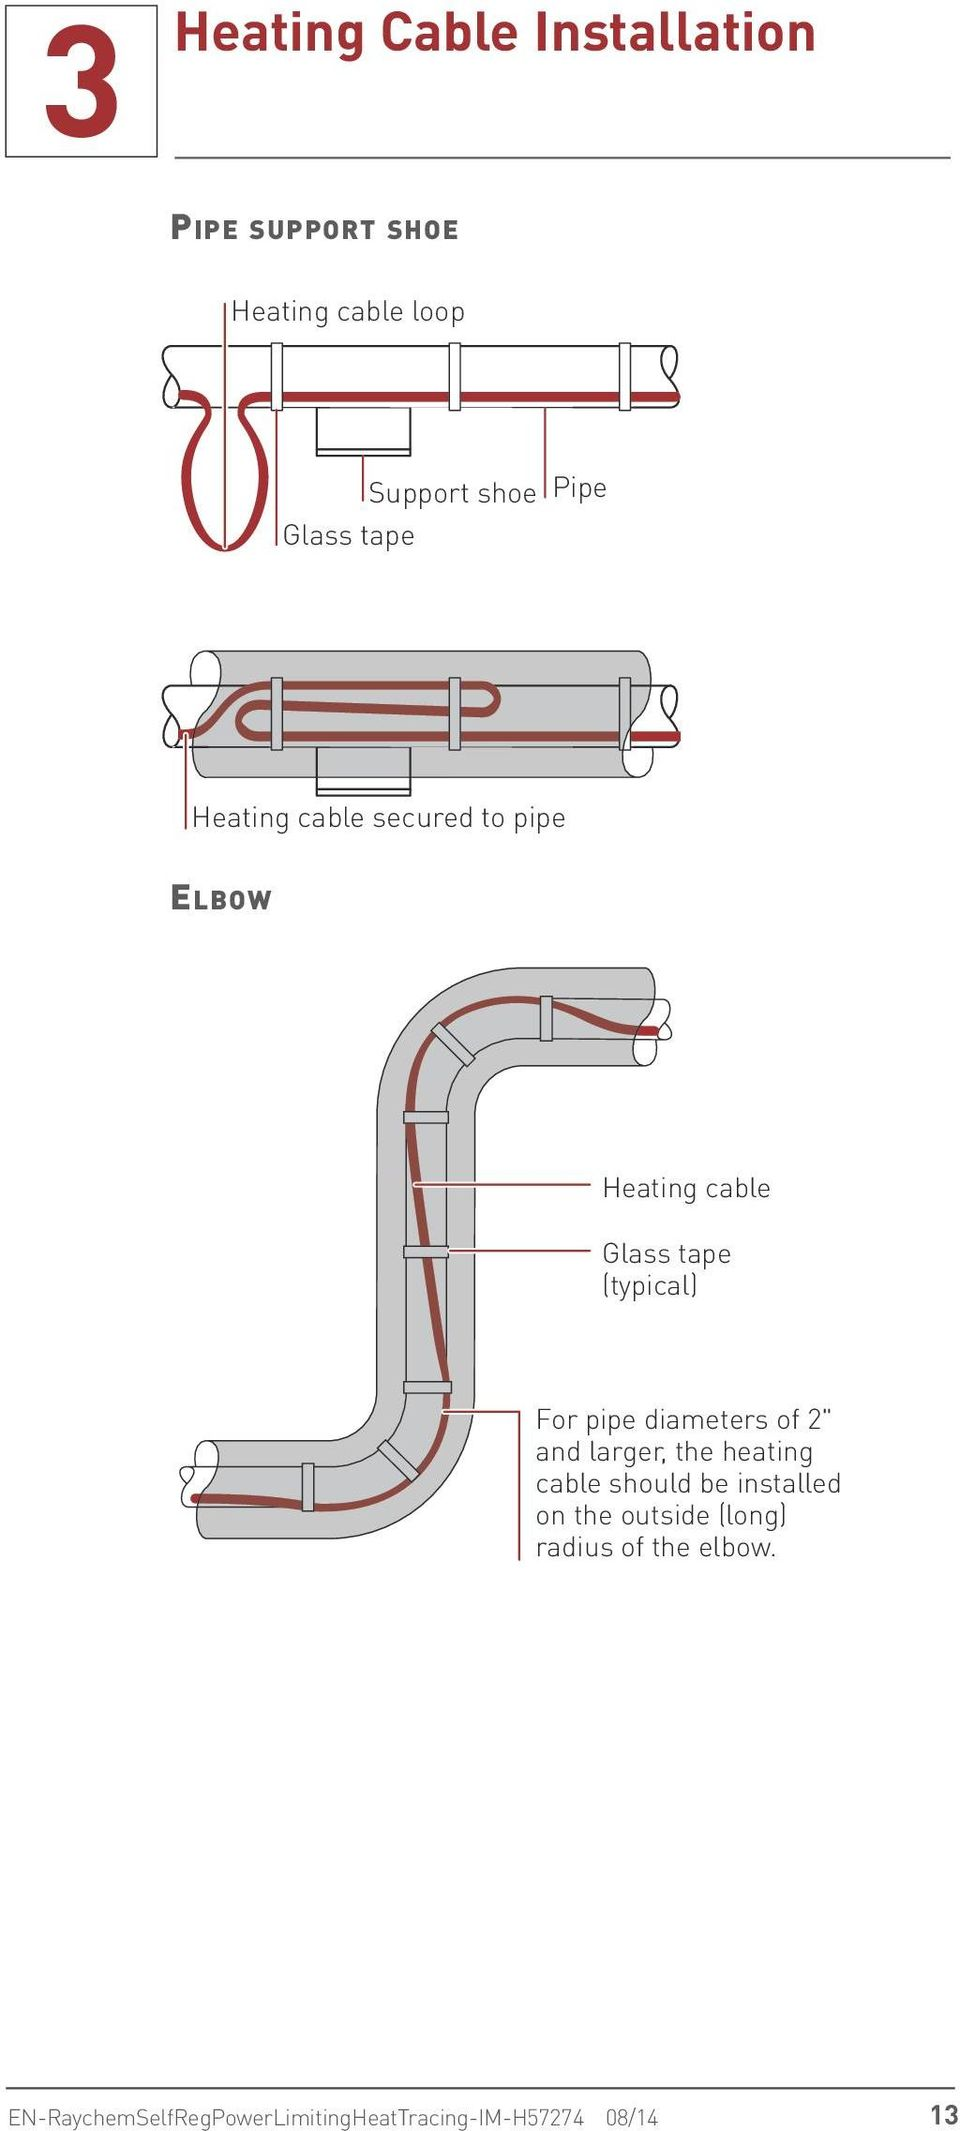 "pipe diameters of 2"" and larger, the heating cable should be installed on the outside"